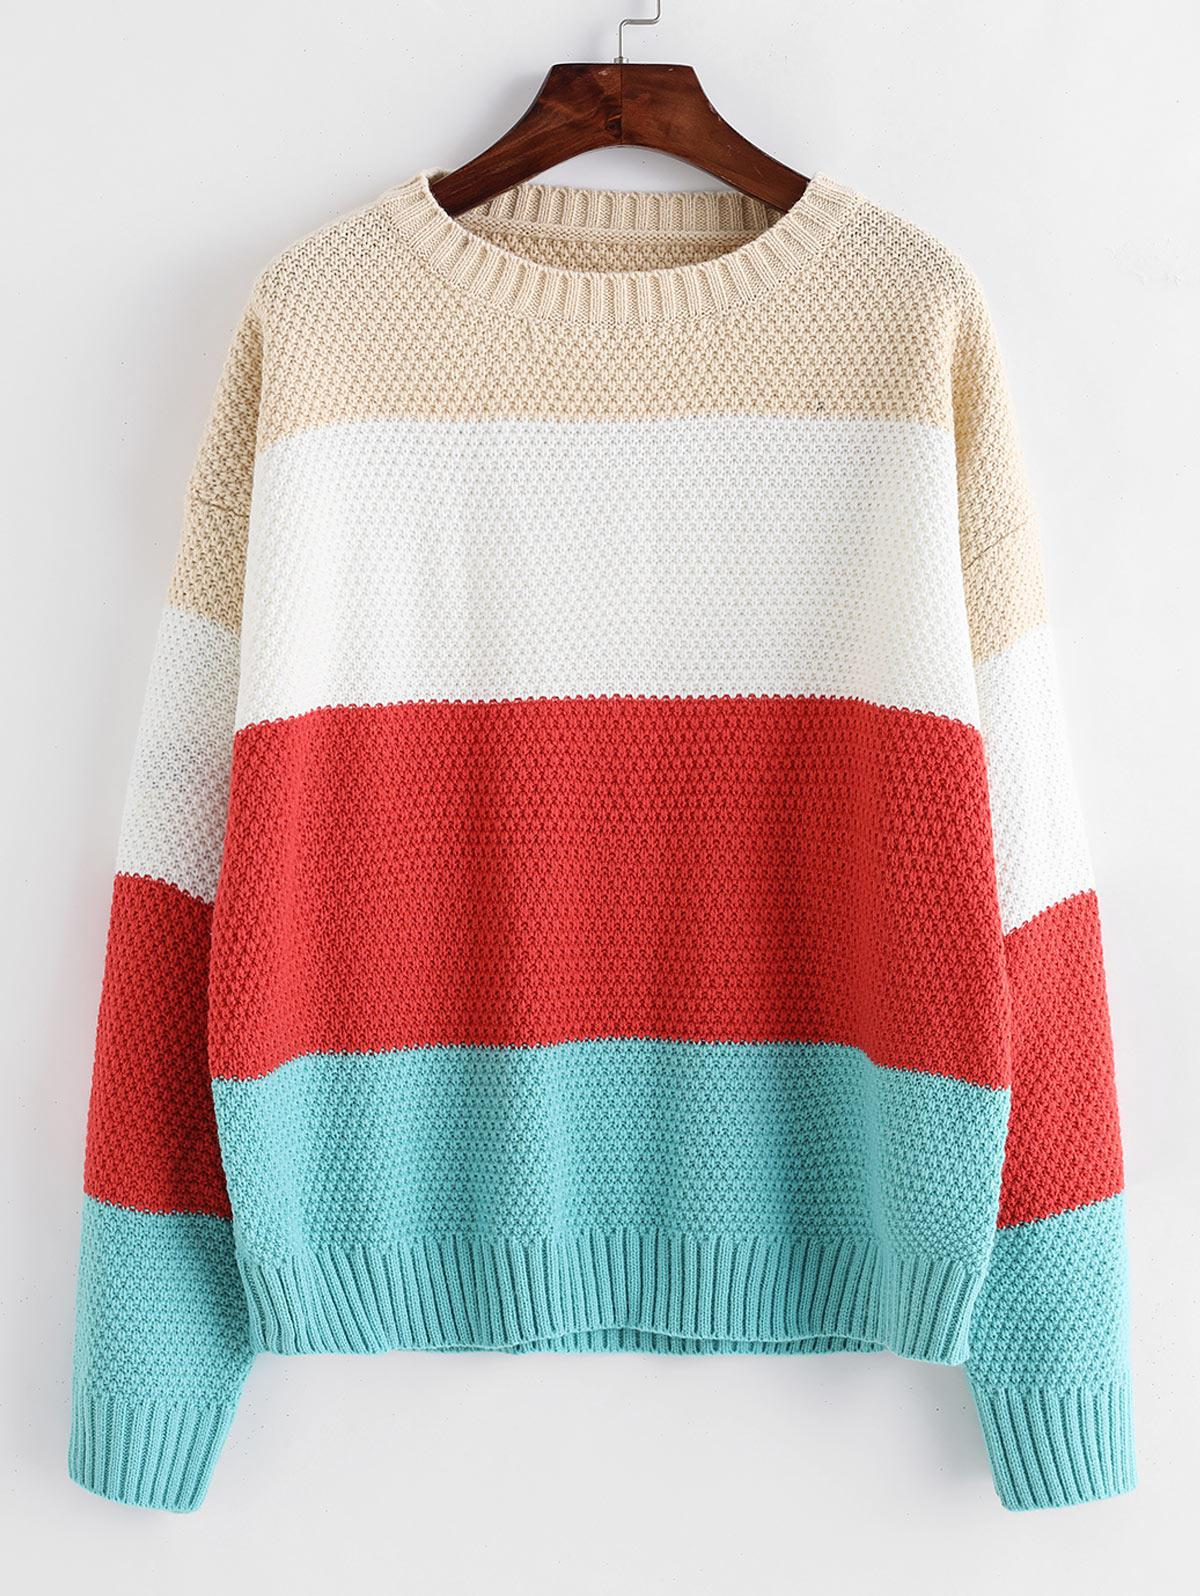 ZAFUL Color-blocking Drop Shoulder Textured Sweater